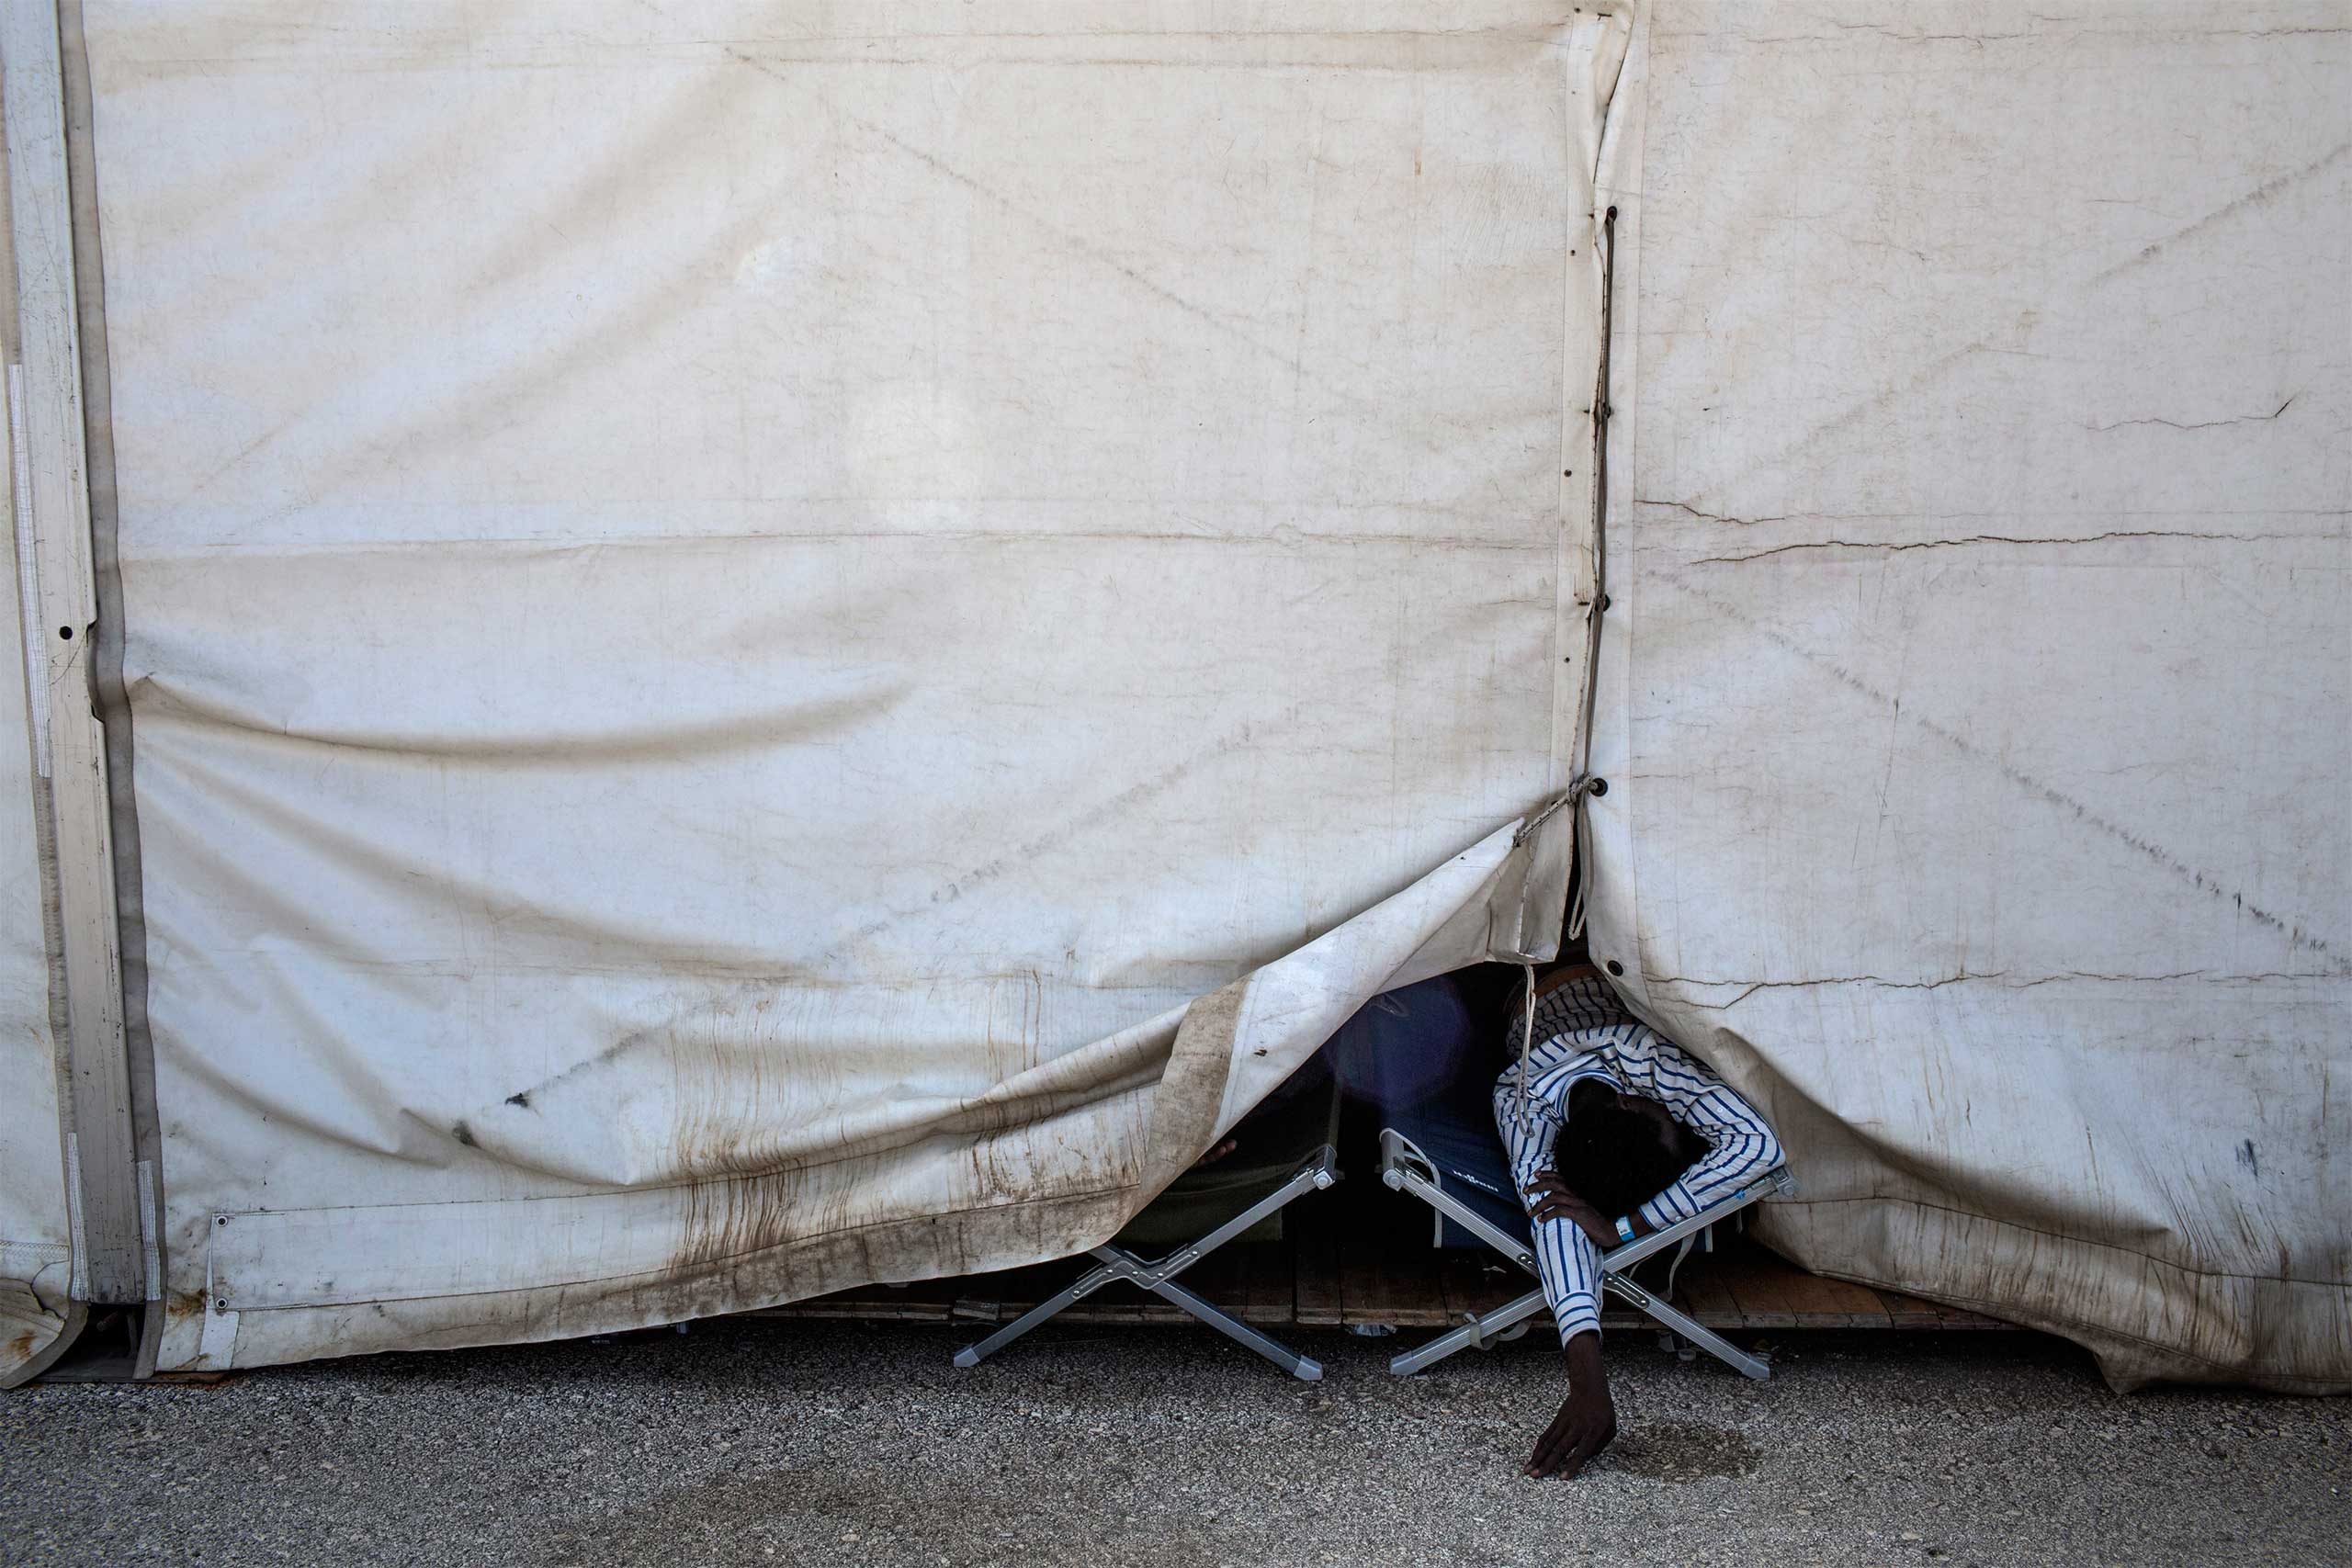 A Sudanese refugee who fled from Darfur rests on a cot in a reception facility of Augusta, Sicily. June 2015.